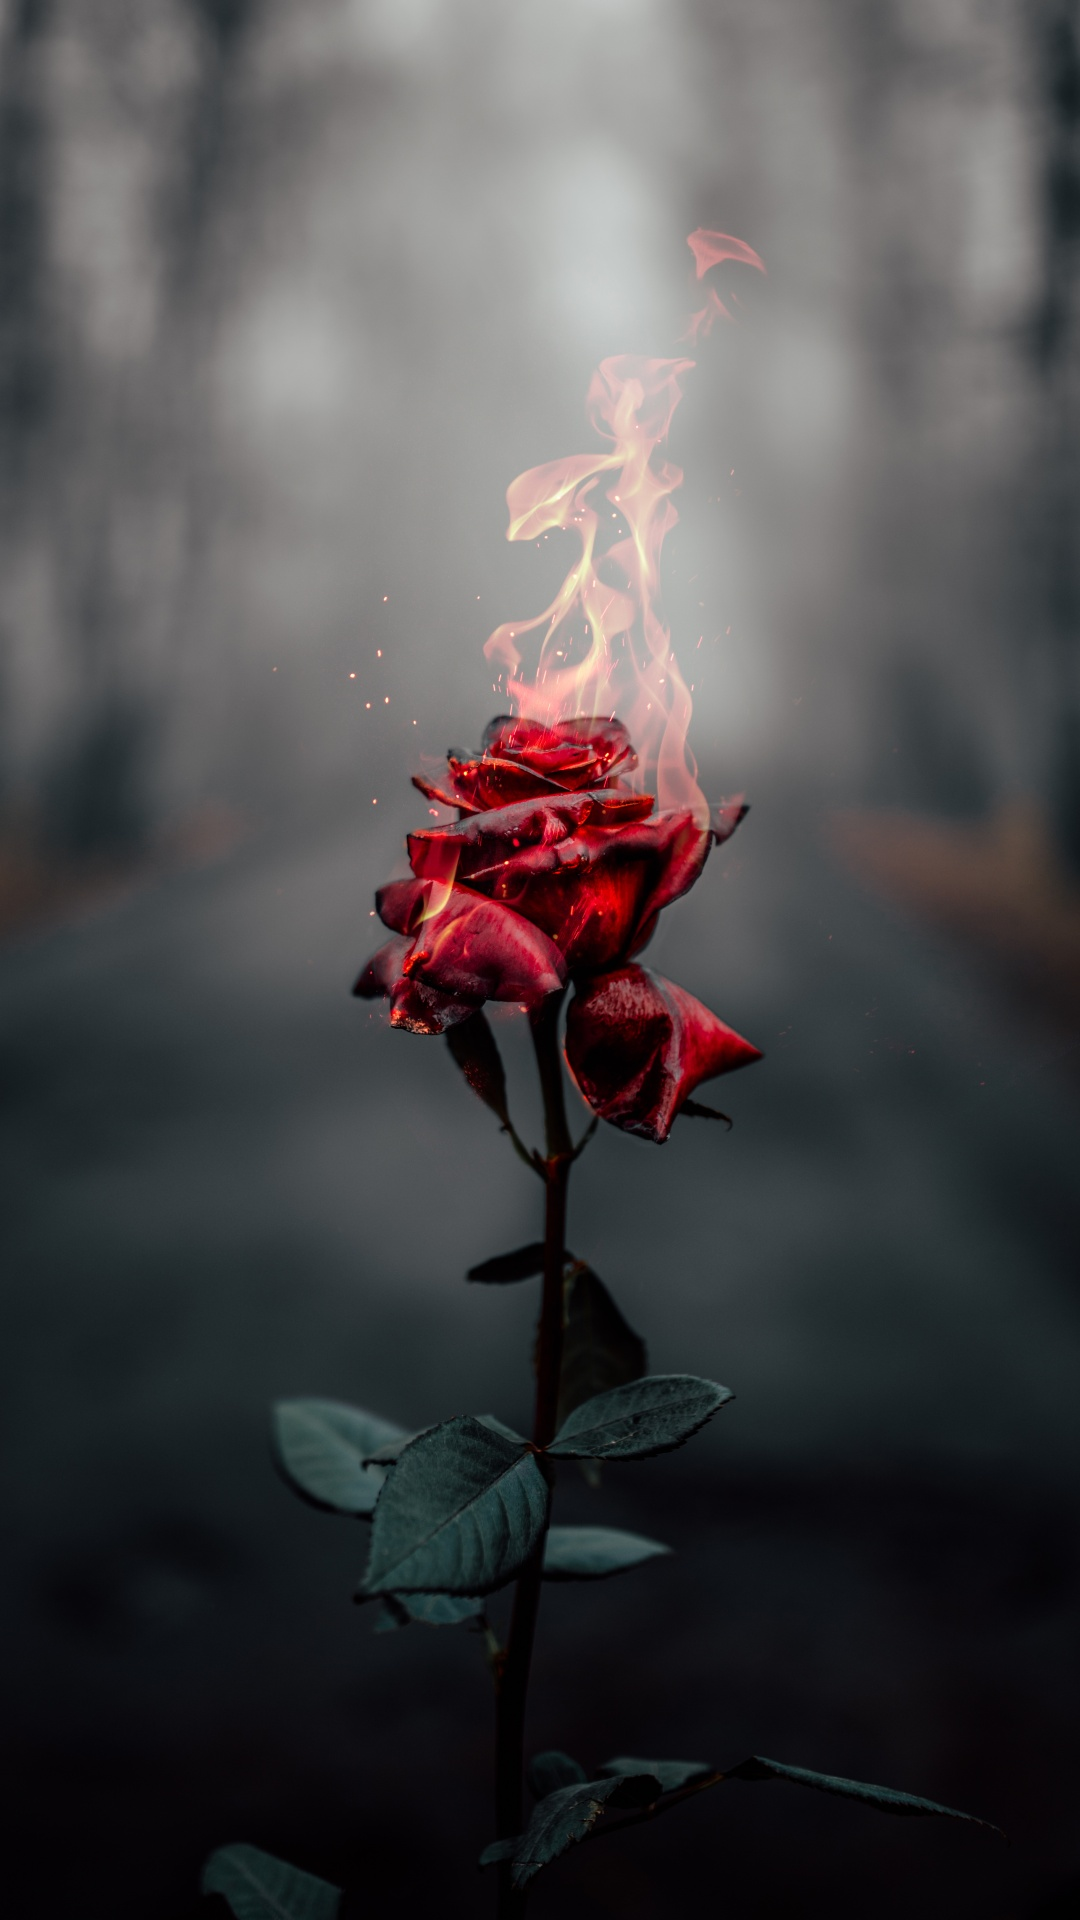 Grab the series 6 at $80 off we may earn a com. Rose flower 4K Wallpaper, Fire, Burning, Dark, Flowers, #464